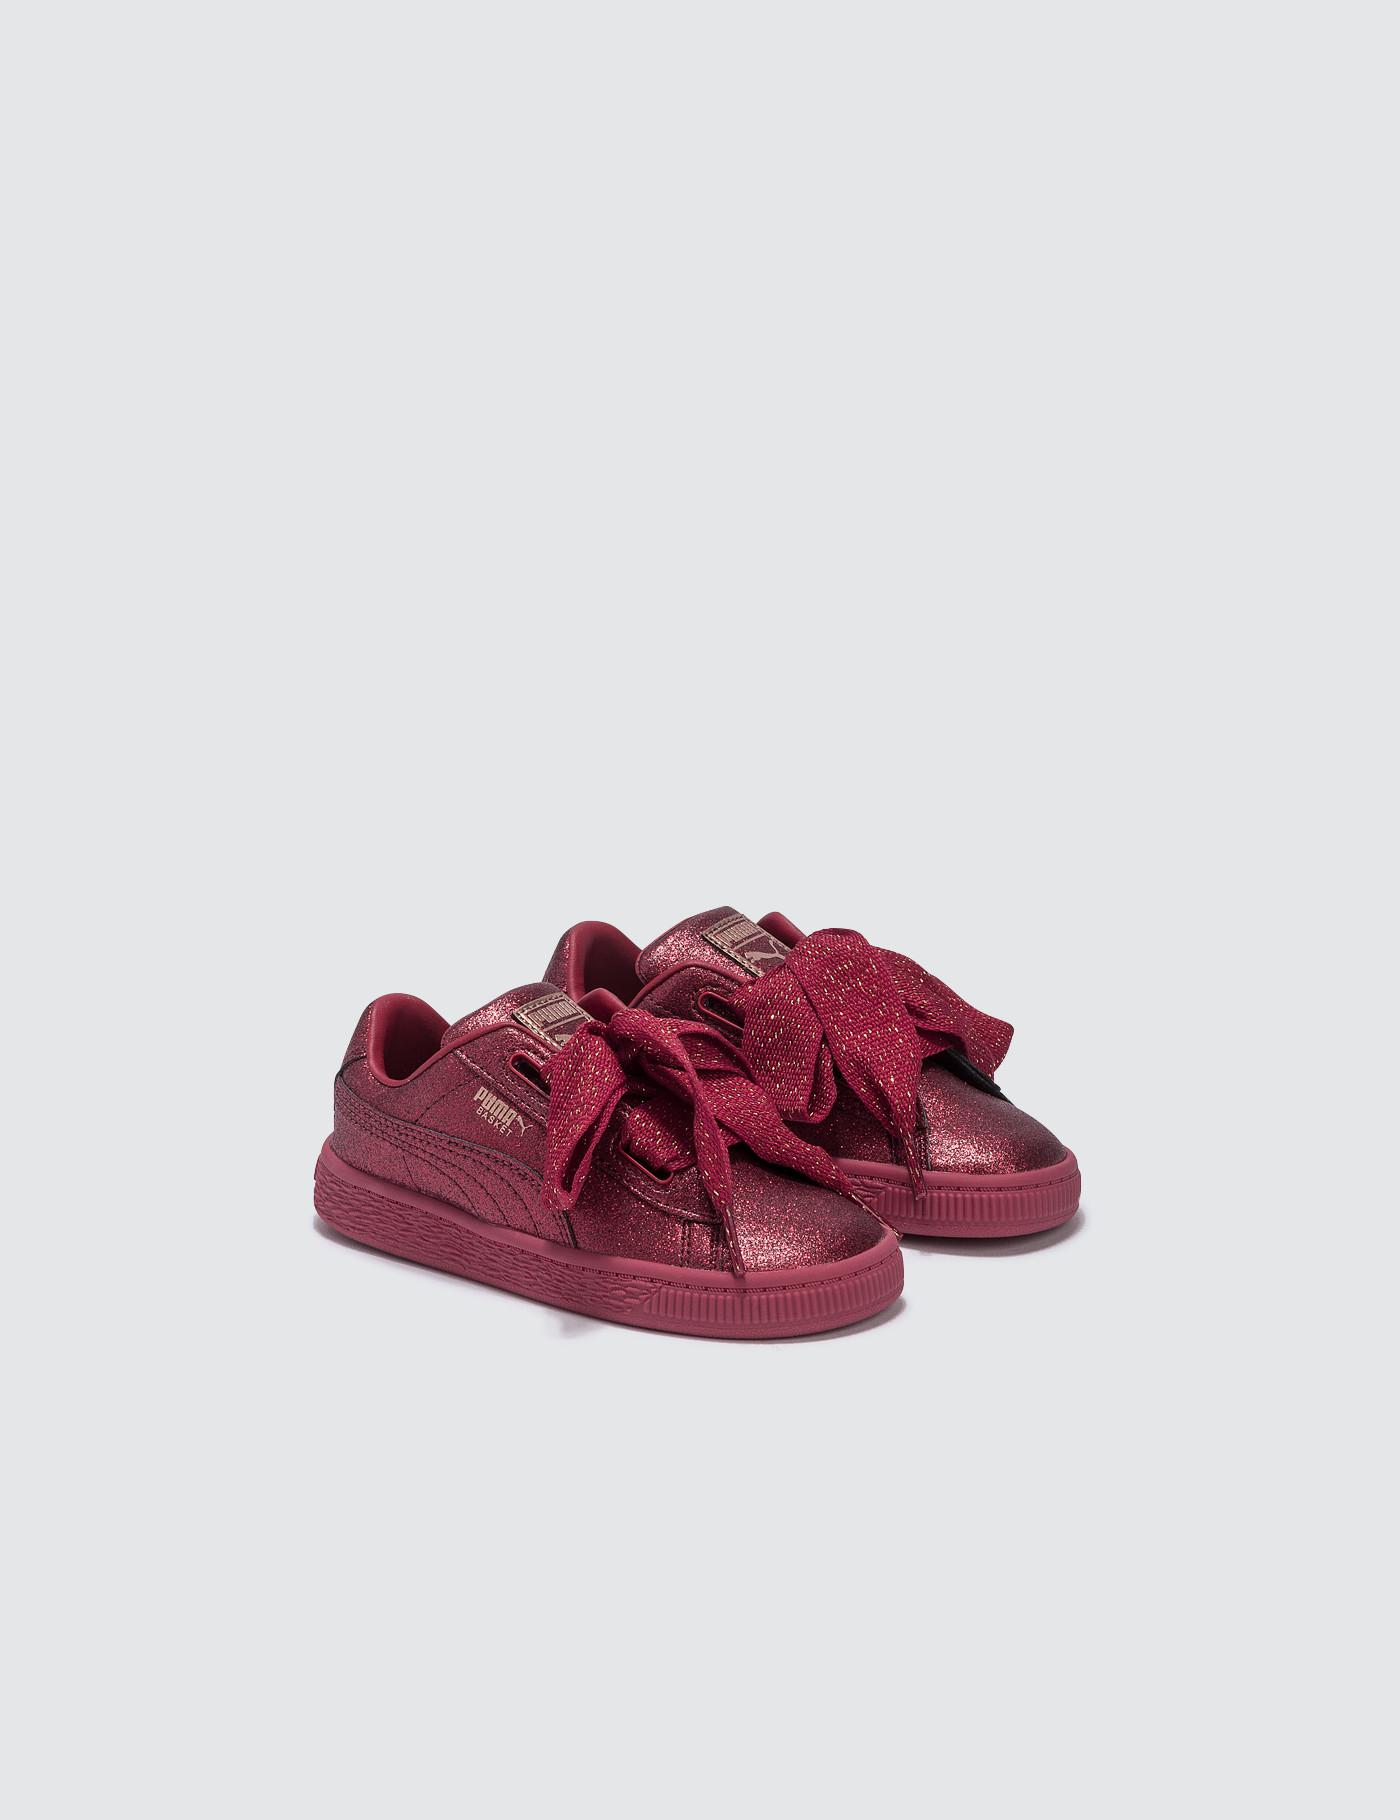 PUMA - Red Basket Heart Holiday Glamour Infant - Lyst. View fullscreen 99f29be1f